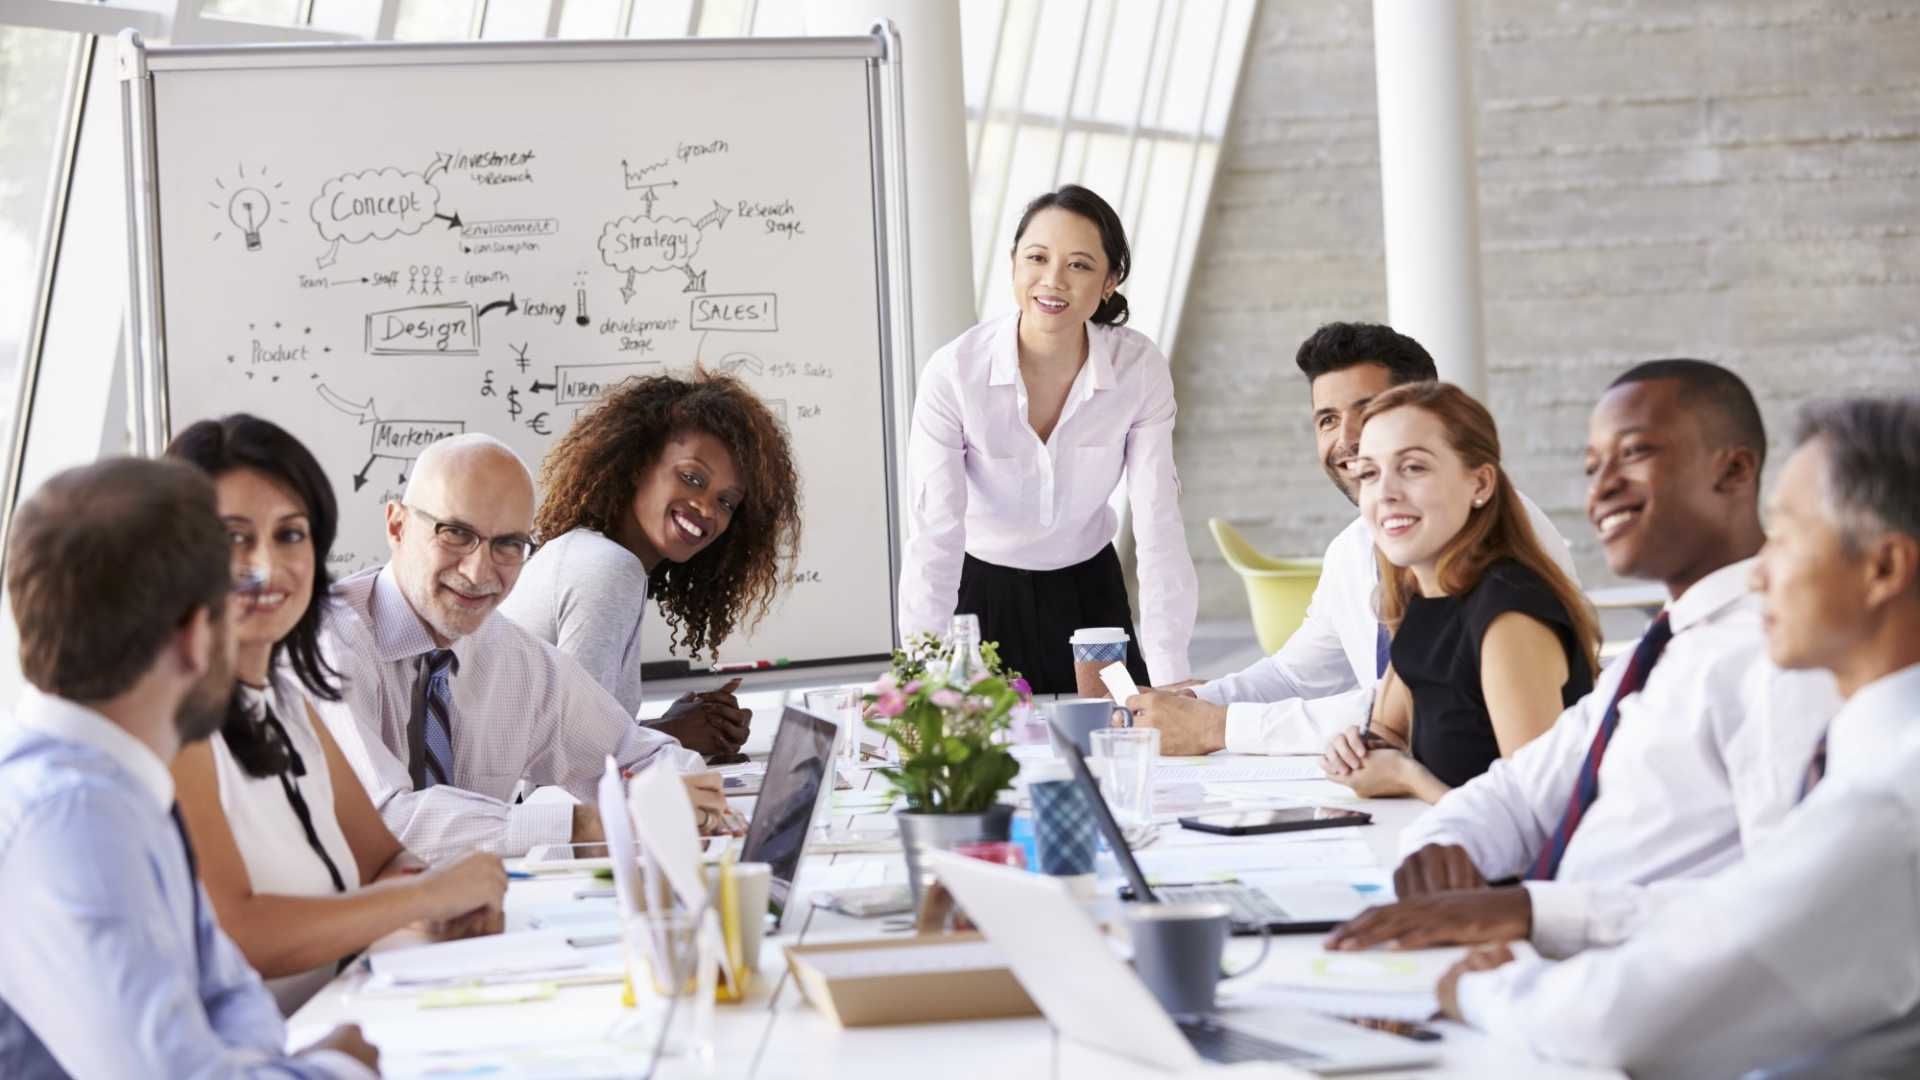 Three Things the Best Bosses Do That Keep Employees Engaged